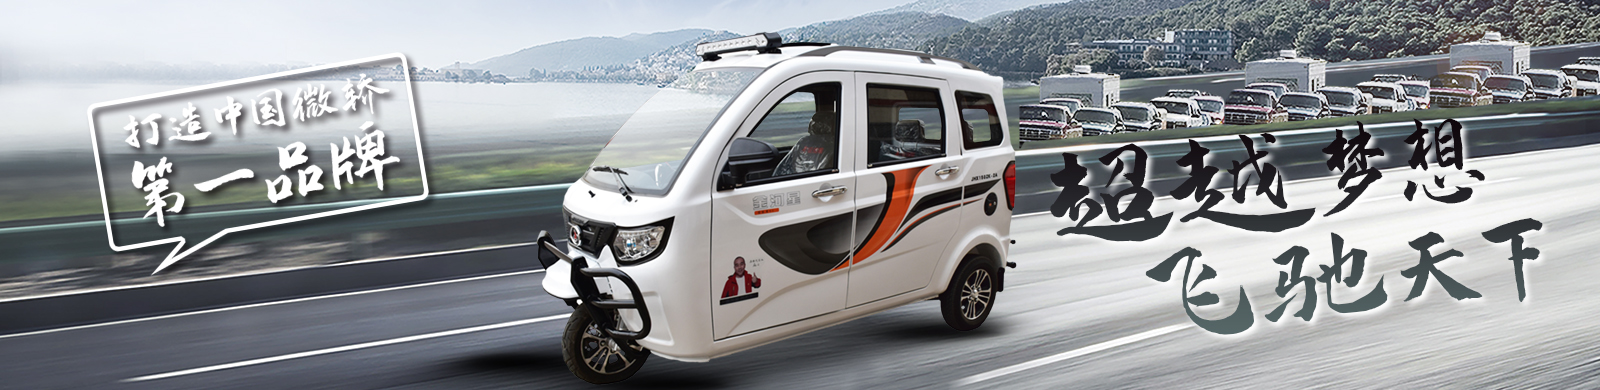 How much is hengsheng jinhe enclosed three-wheeled motorcycle?